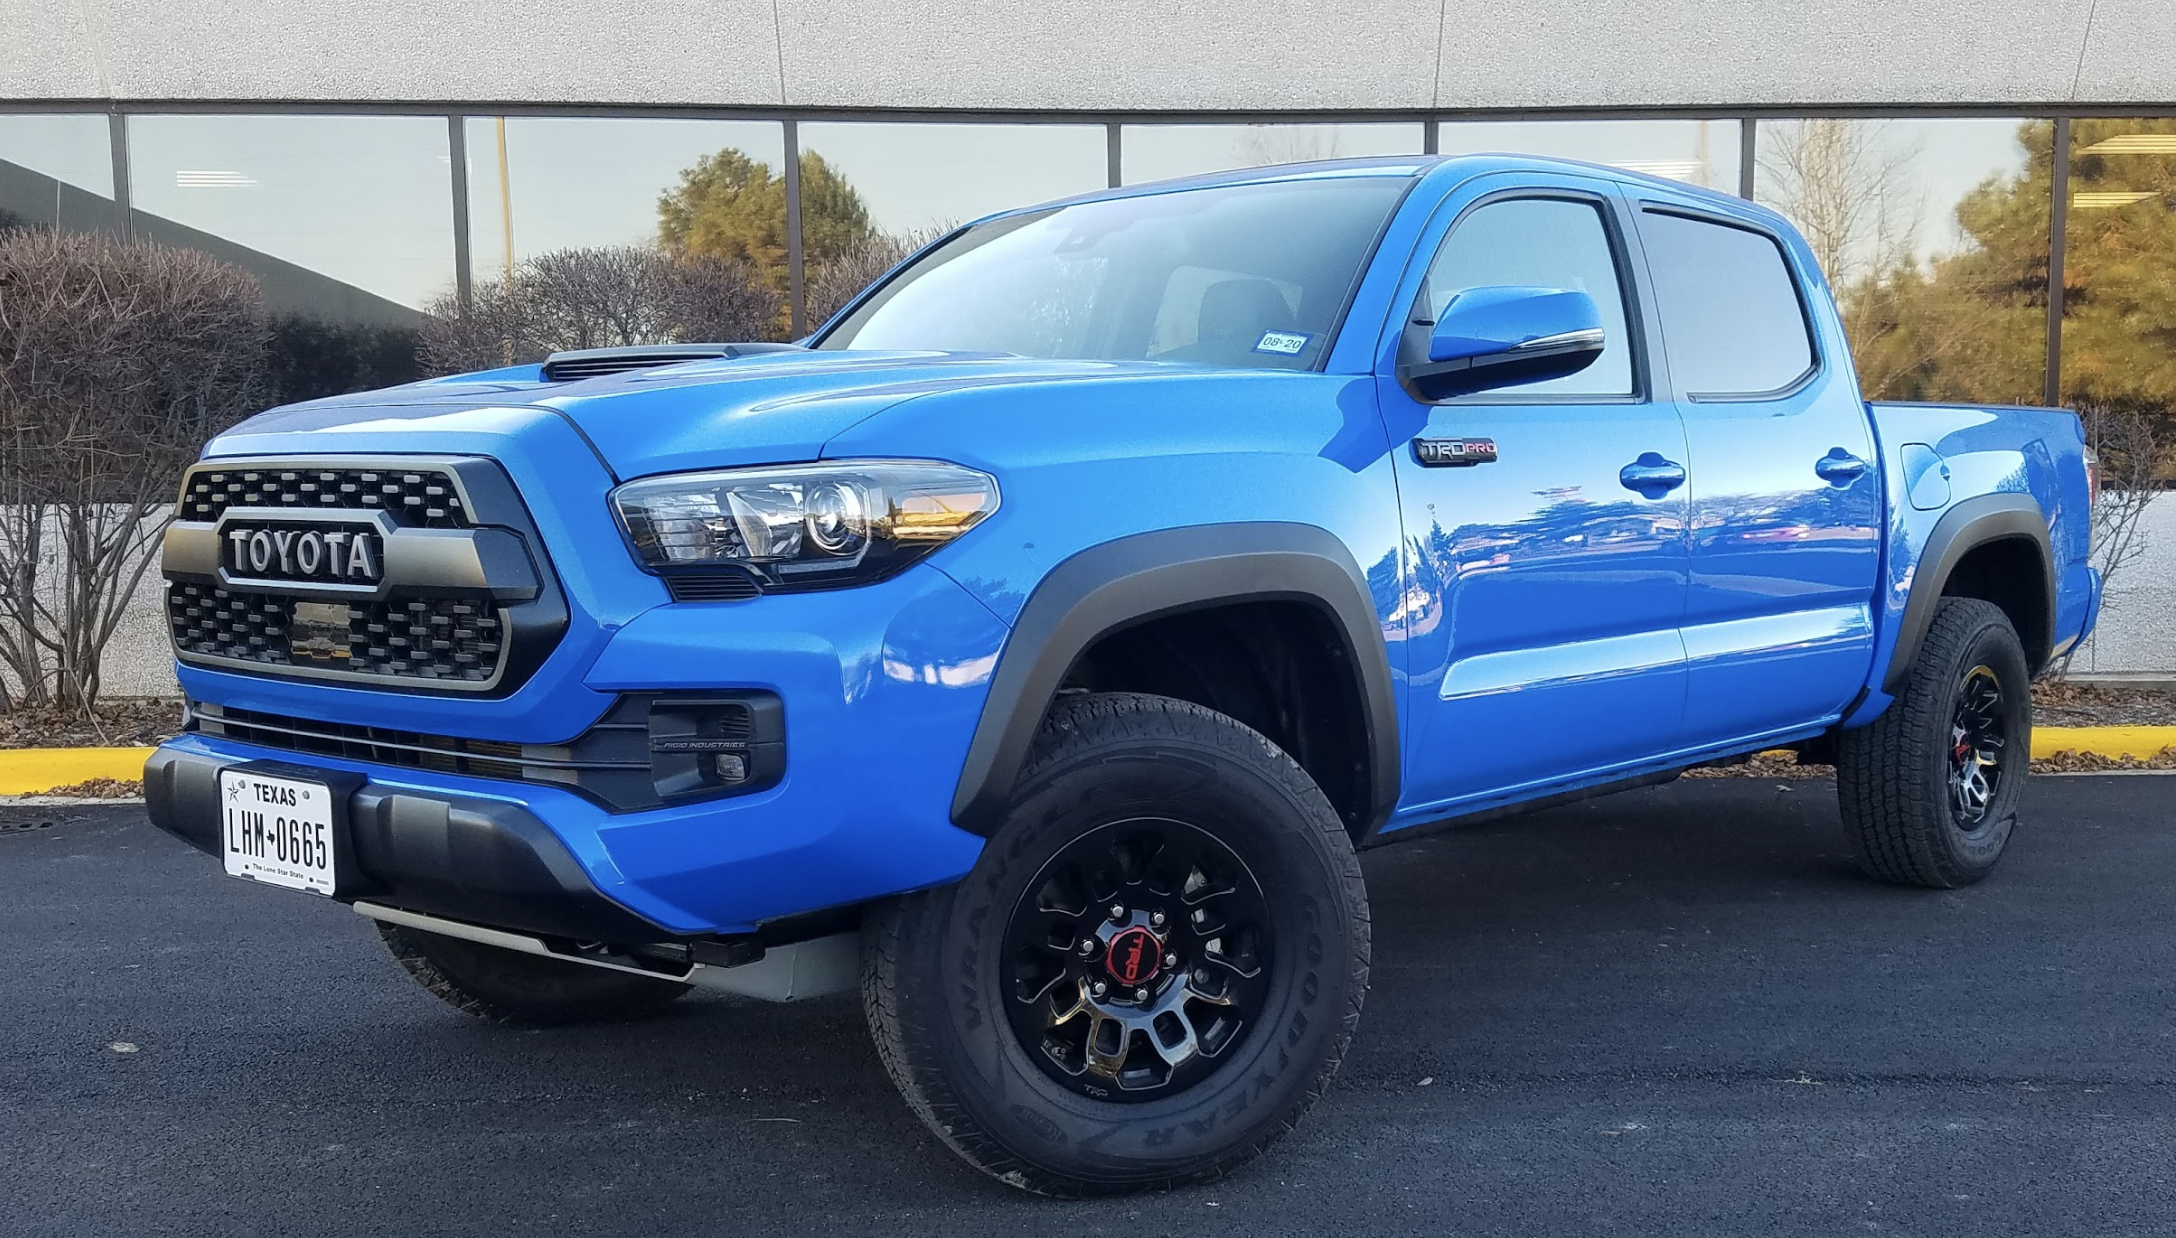 2019 Toyota Tacoma Trd Pro 4x4 Double Cab The Daily Drive Consumer Guide